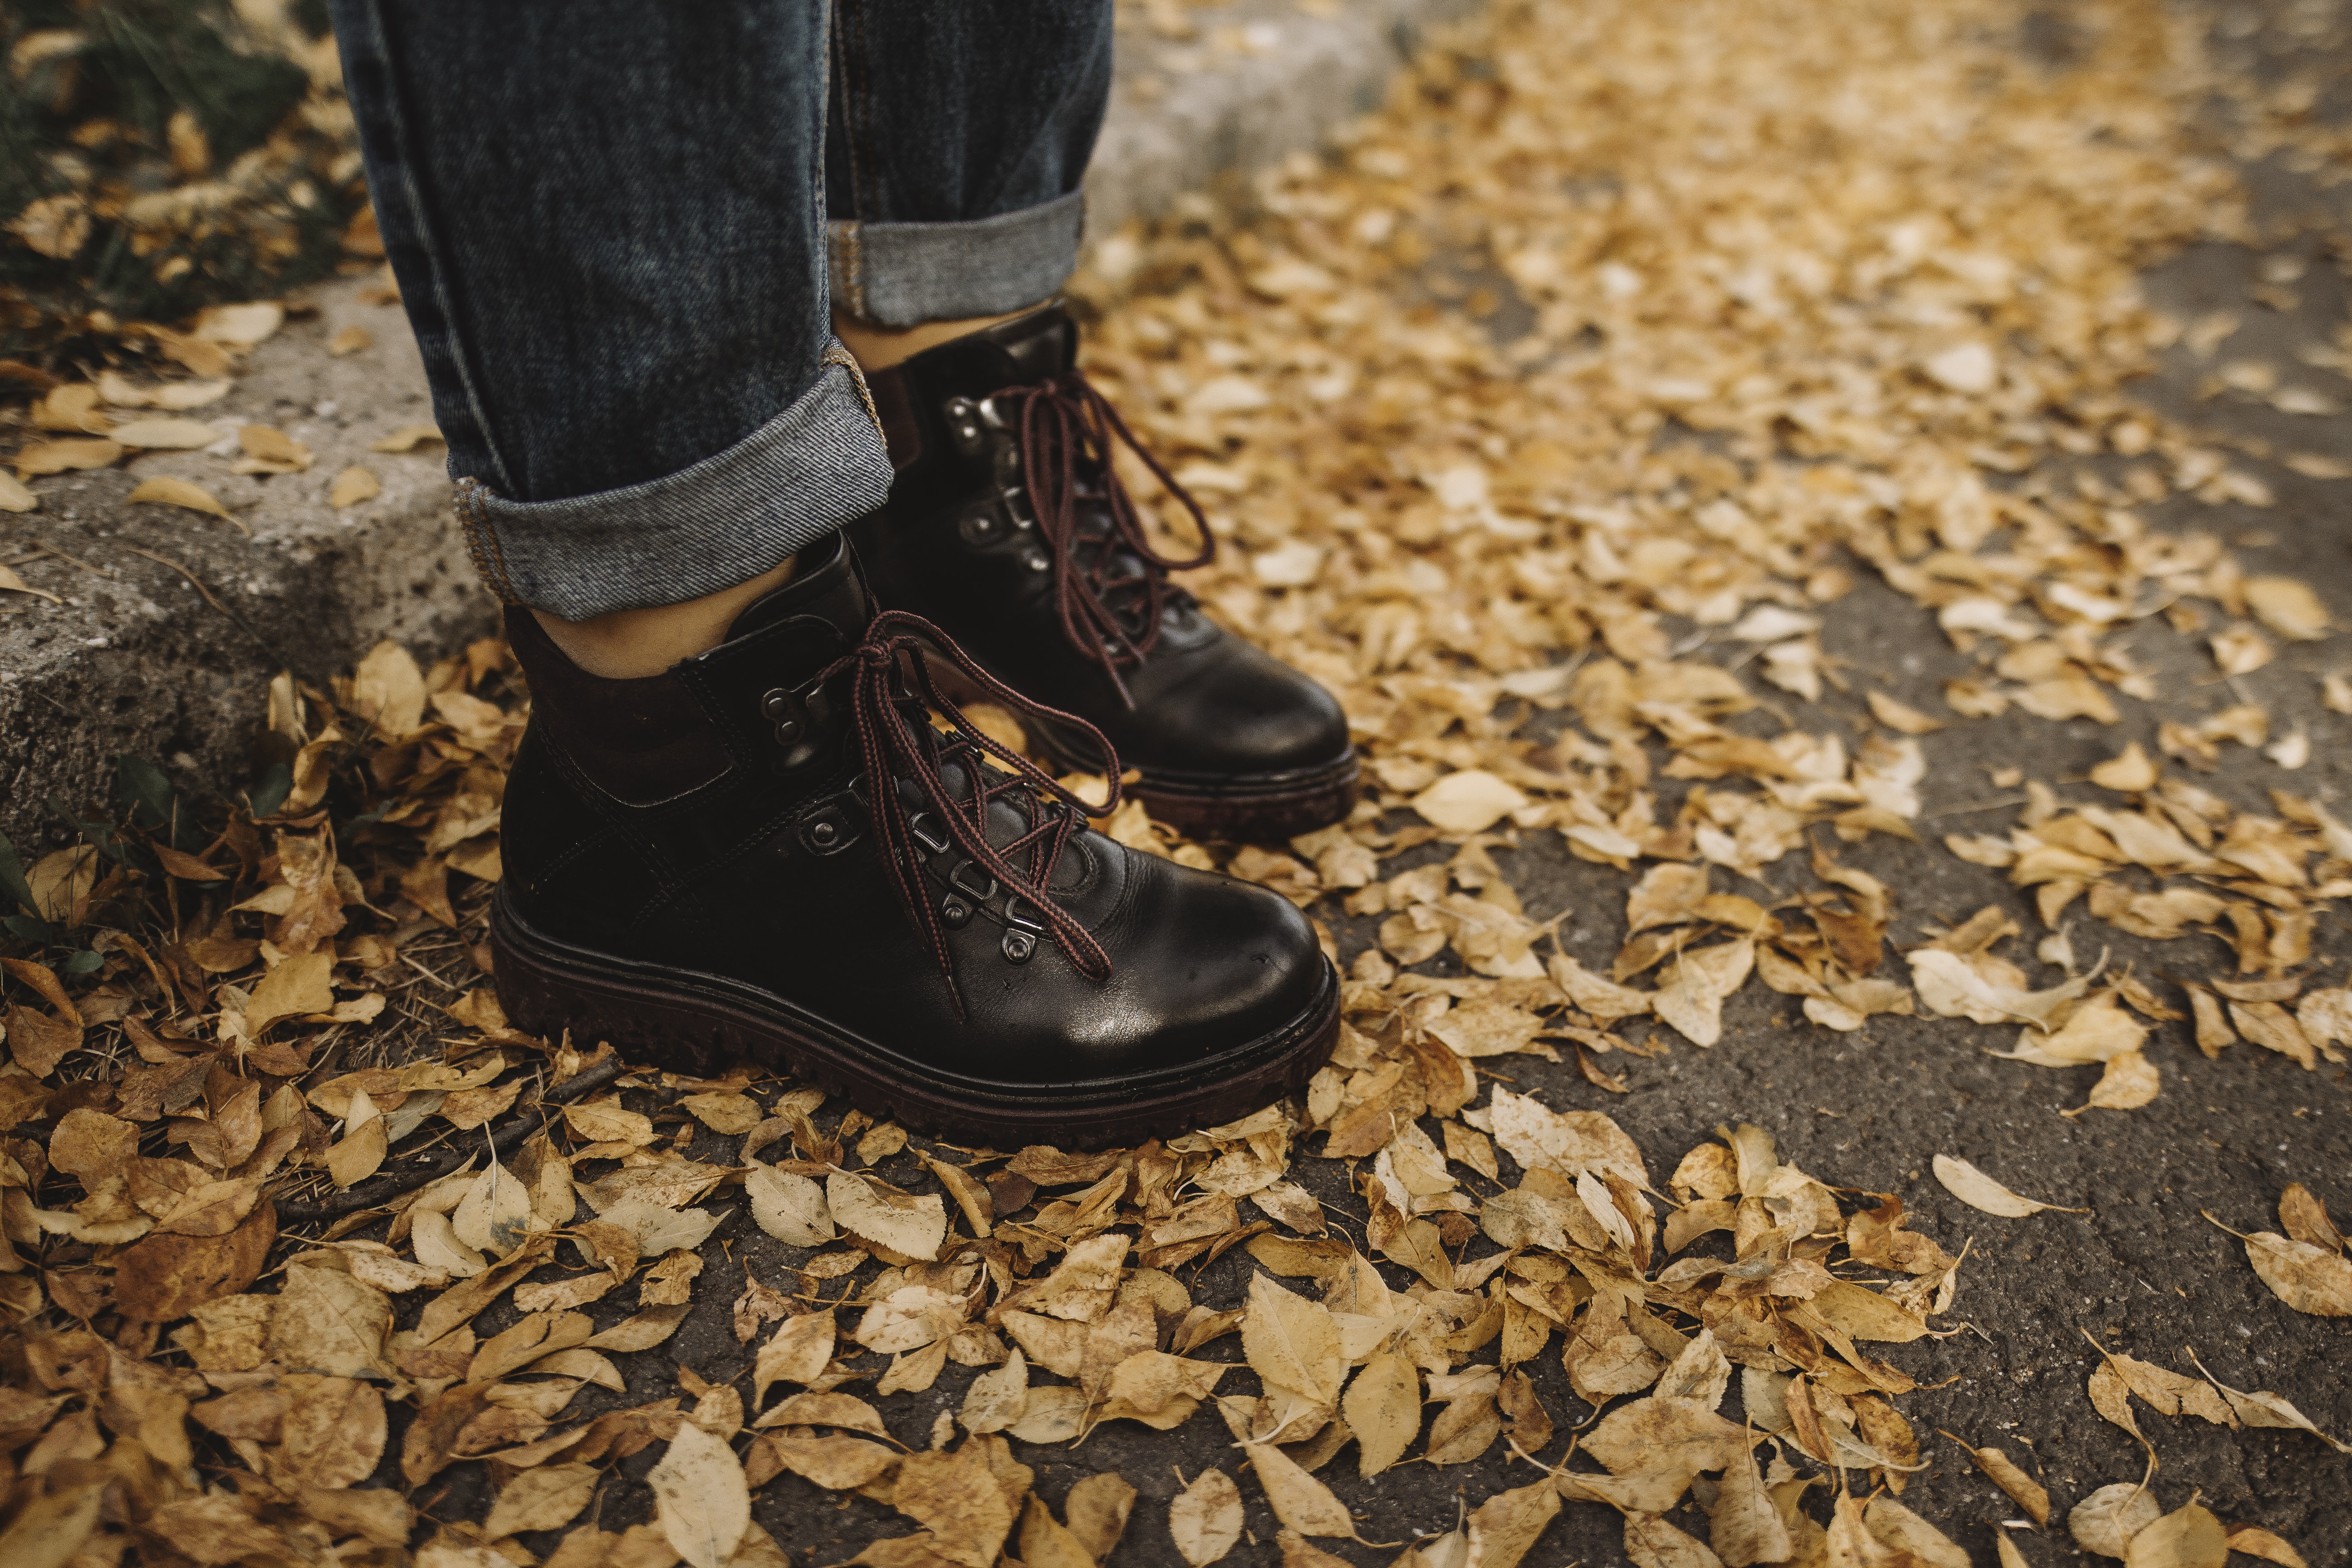 person wearing black leather work boots